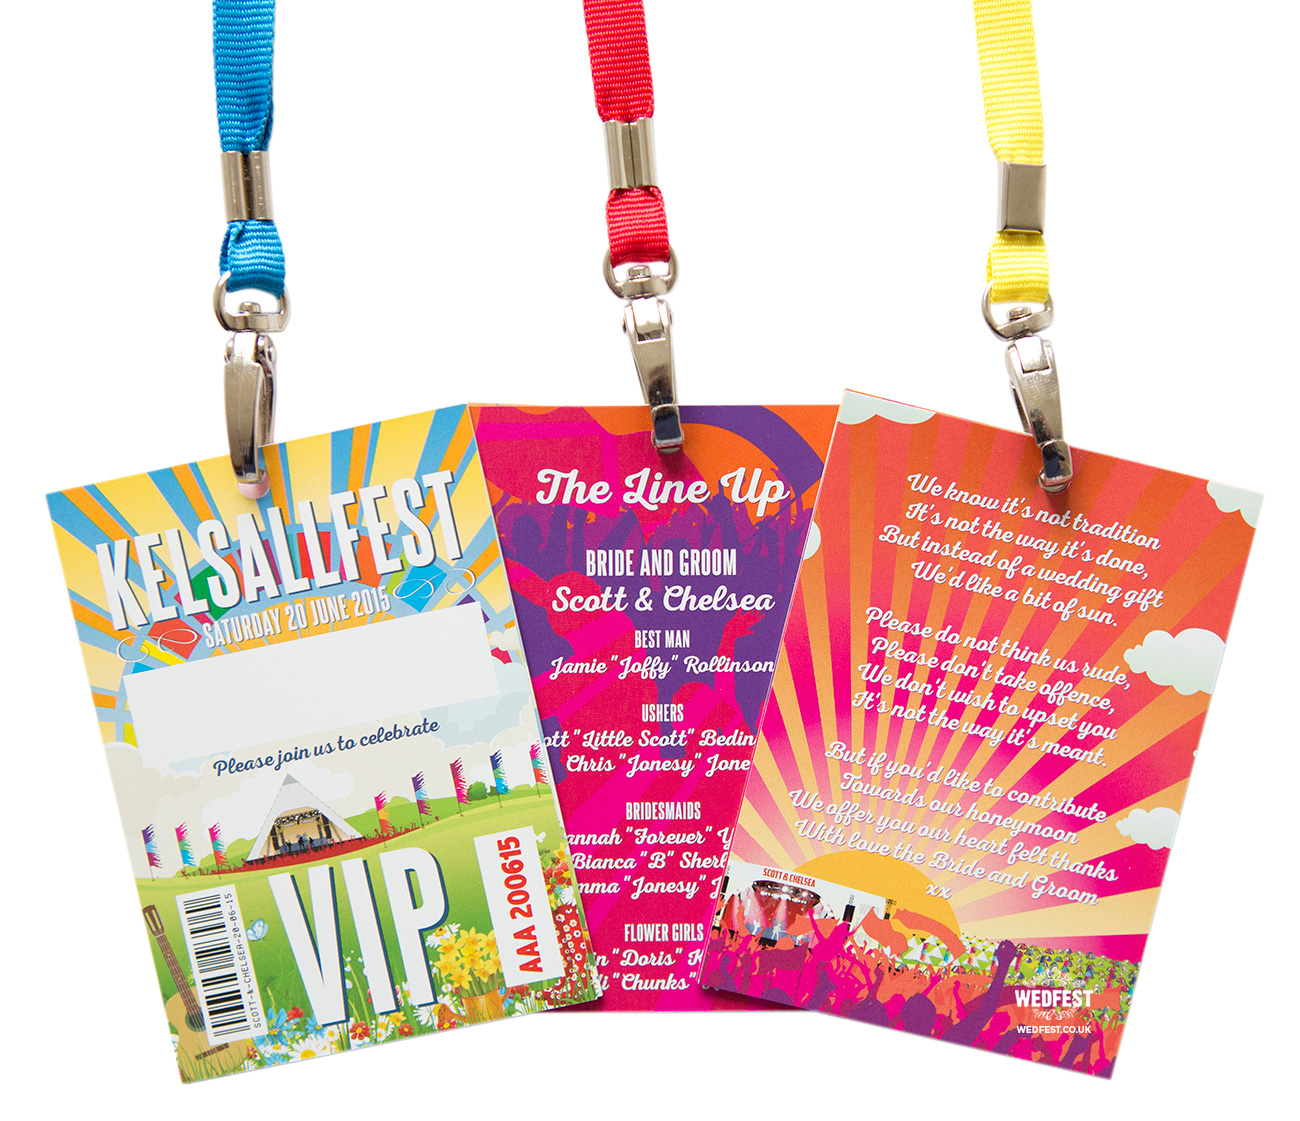 festival wedding lanyards program invites